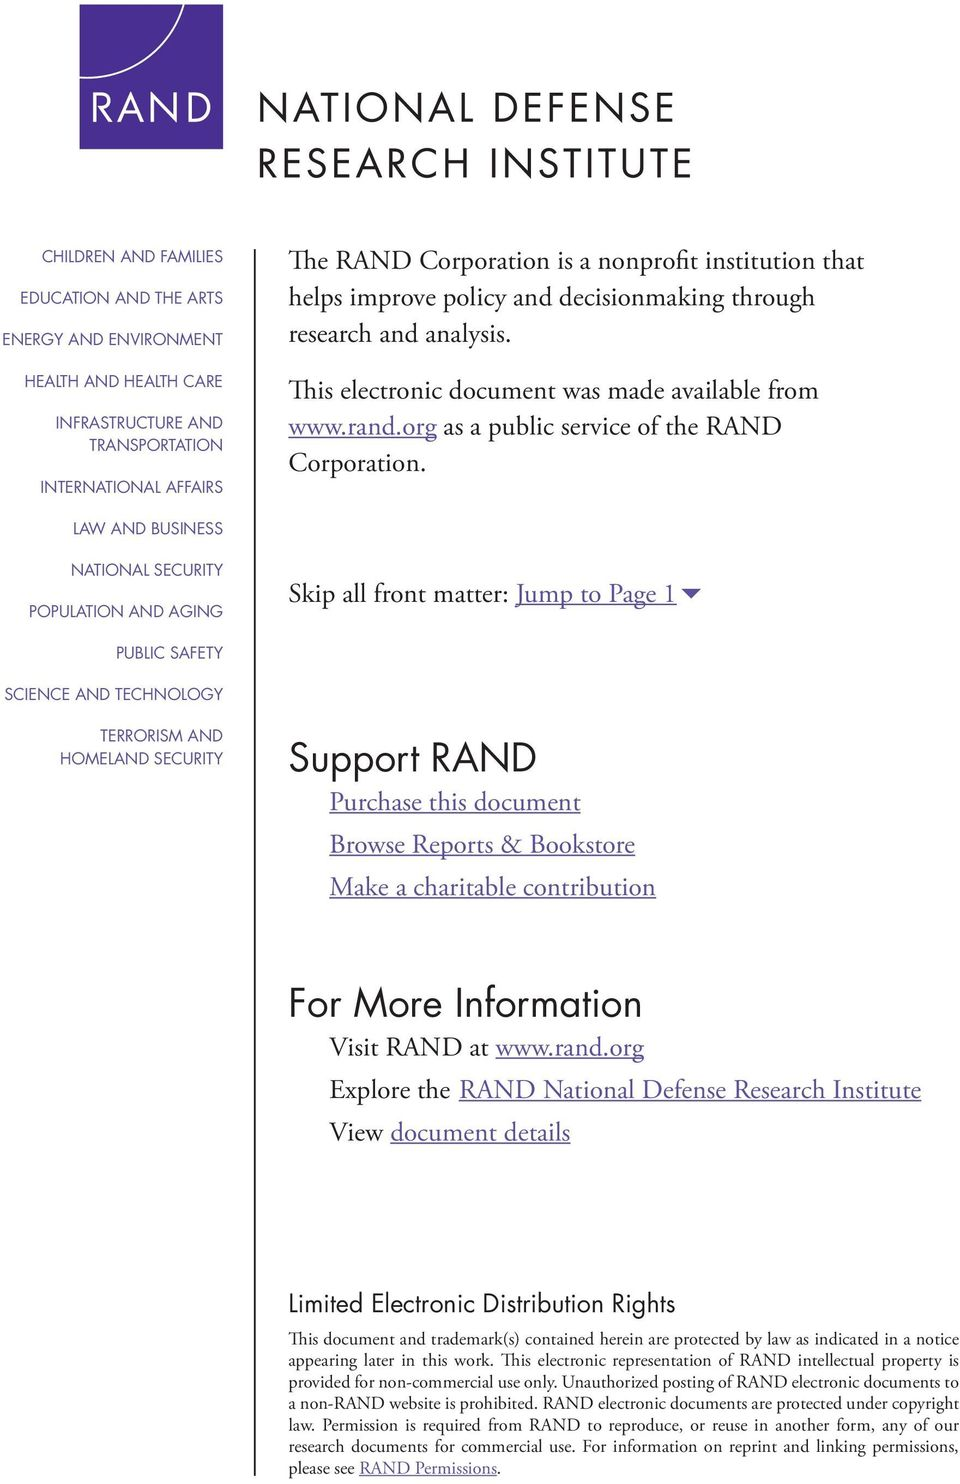 LAW AND BUSINESS NATIONAL SECURITY POPULATION AND AGING Skip all front matter: Jump to Page 16 PUBLIC SAFETY SCIENCE AND TECHNOLOGY TERRORISM AND HOMELAND SECURITY Support RAND Purchase this document